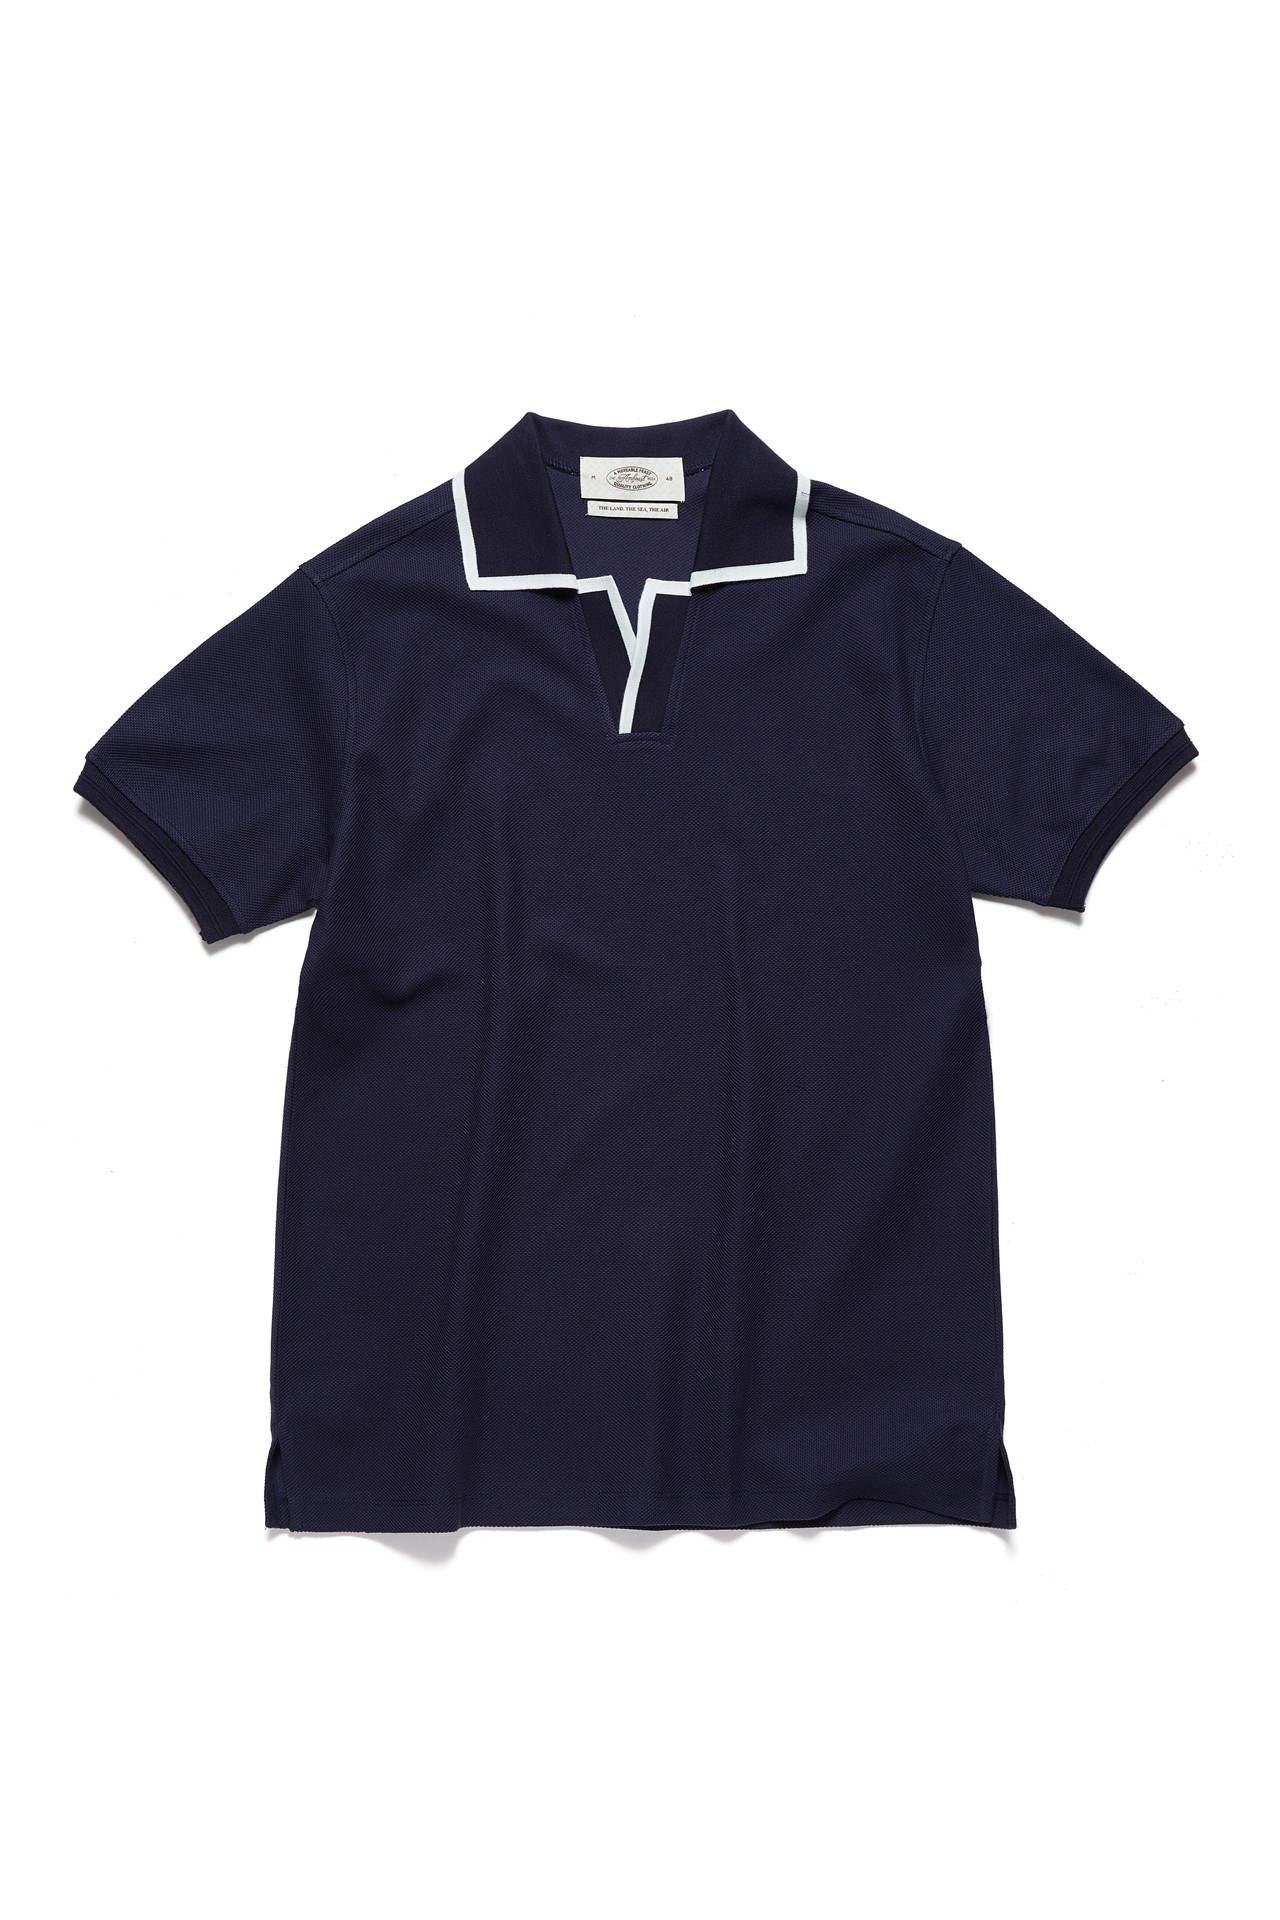 NAVY LINE POLO SHIRTSAmfeast(암피스트)